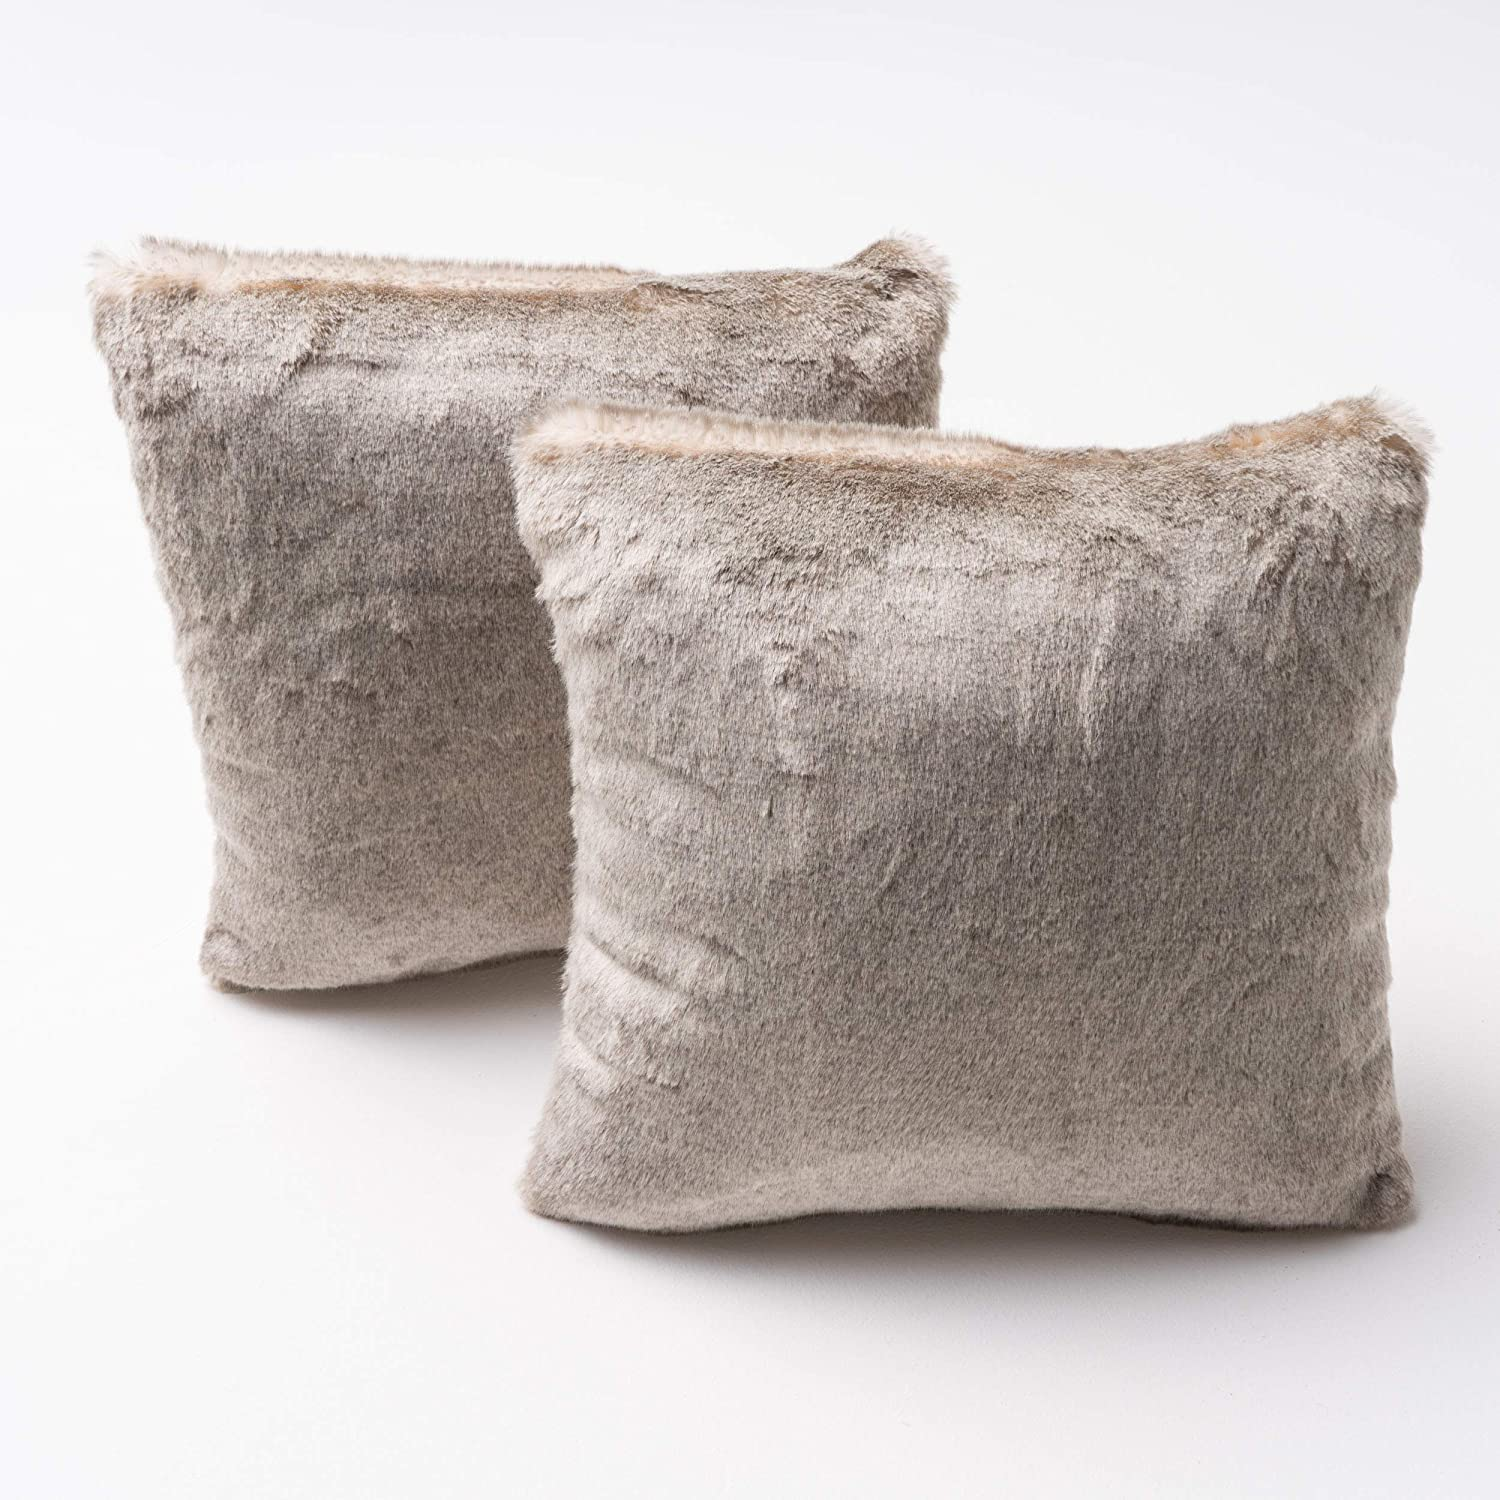 Christopher Knight Home Elise Fabric Pillows with Polyester Fiber Fill, 2-Pcs Set, Light Brown